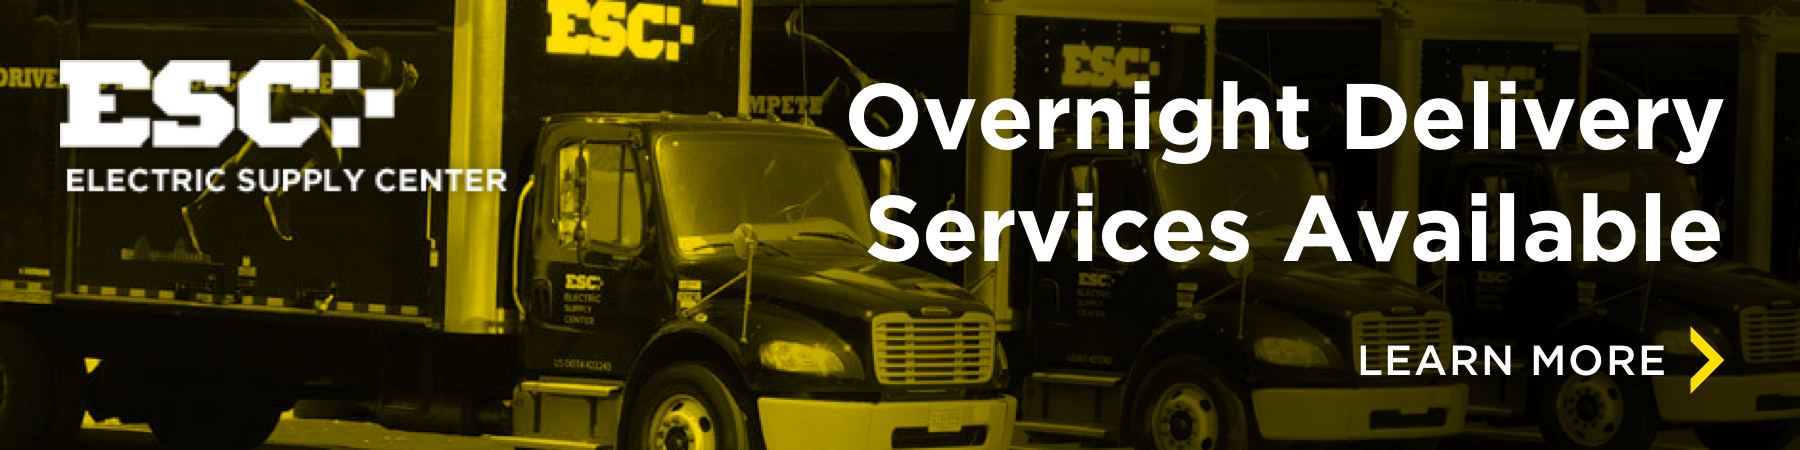 ESC's trucks with overnight delivery services available